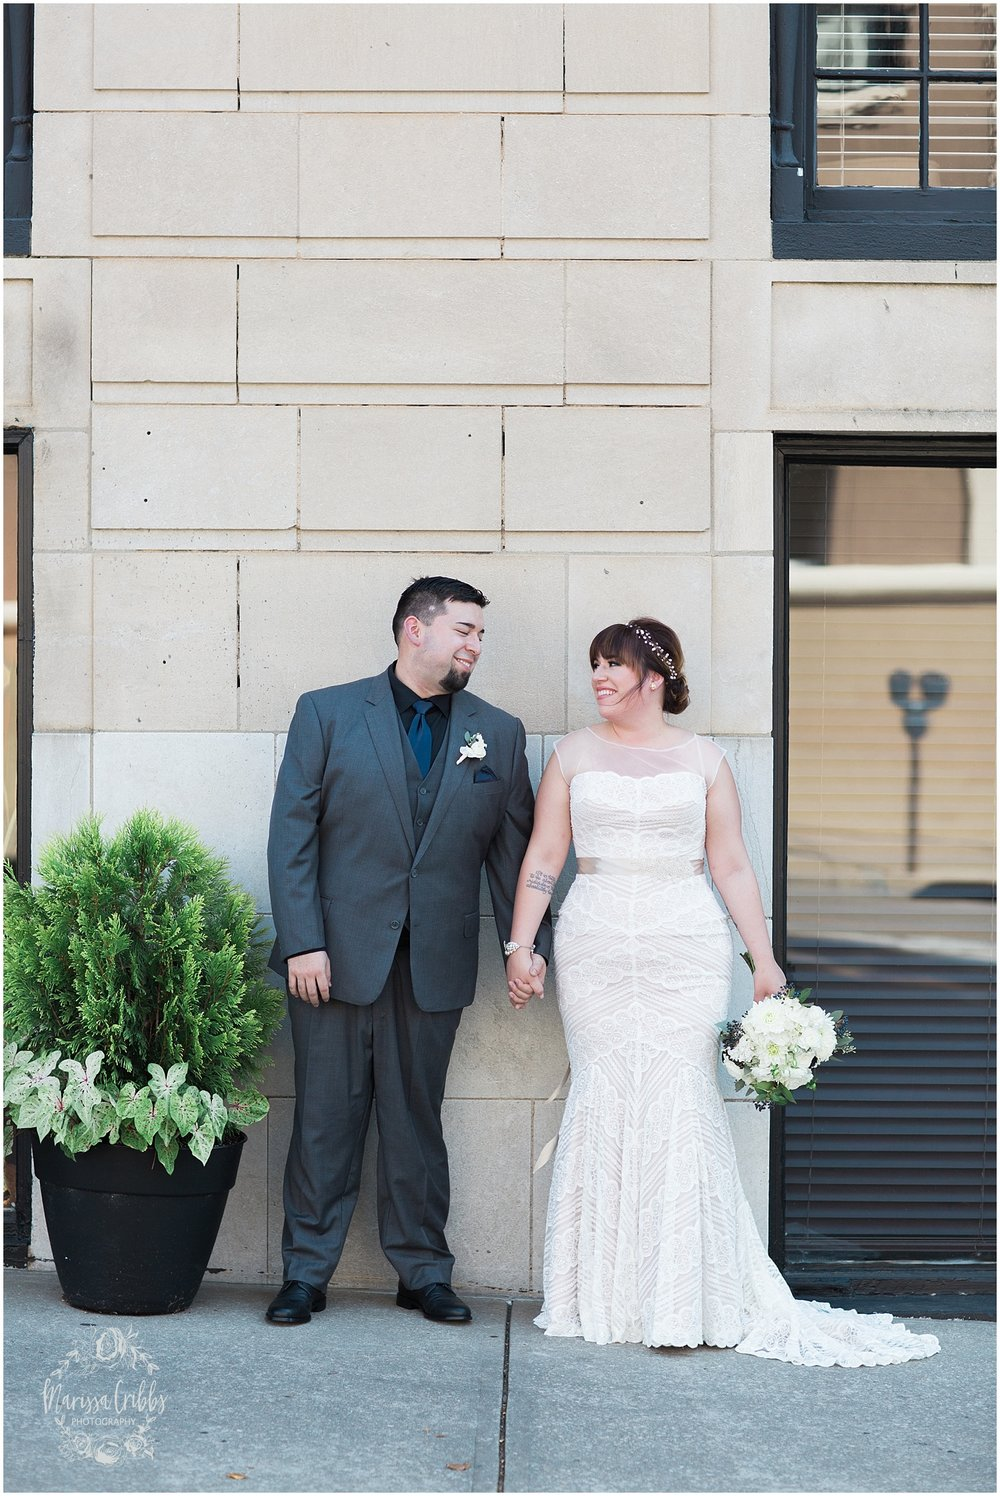 Molly & Alex Lawrence Wedding | The Eldridge Hotel | Lawrence, KS Weddings | Marissa Cribbs Photography | Belle and Bows_0871.jpg